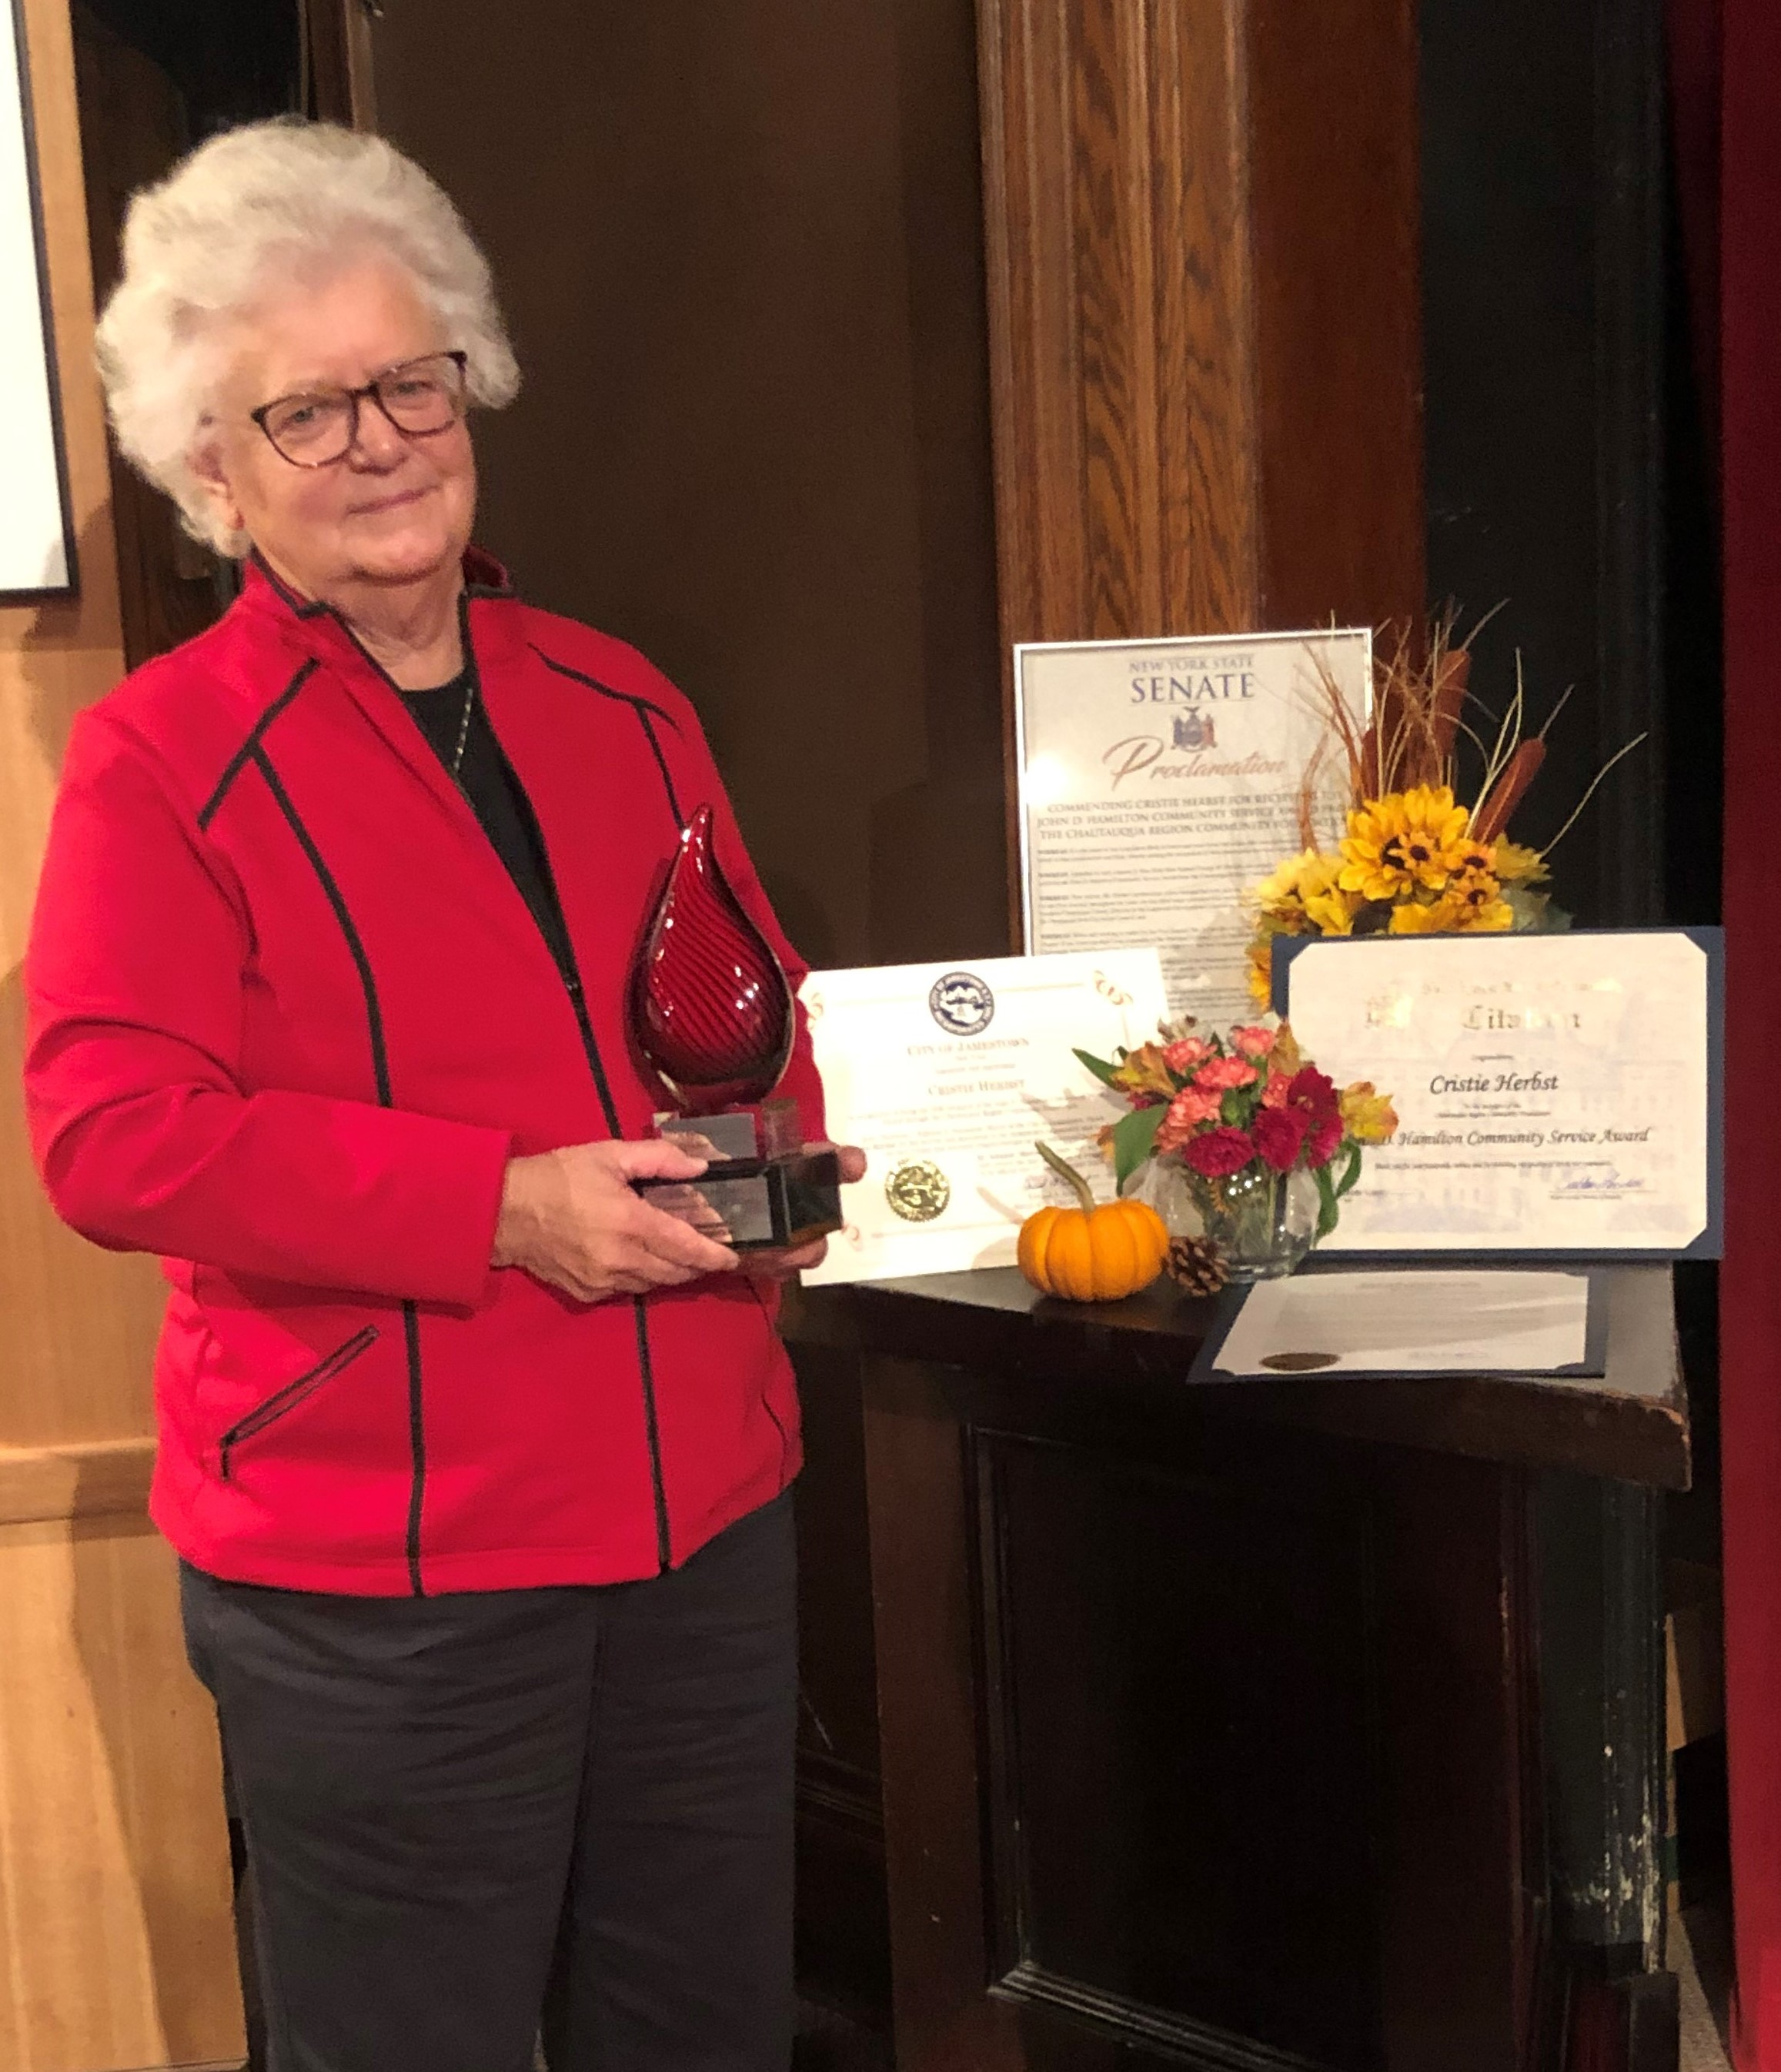 The Chautauqua Region Community Foundation recently presented its annual Community Service Award to Cristie Herbst.